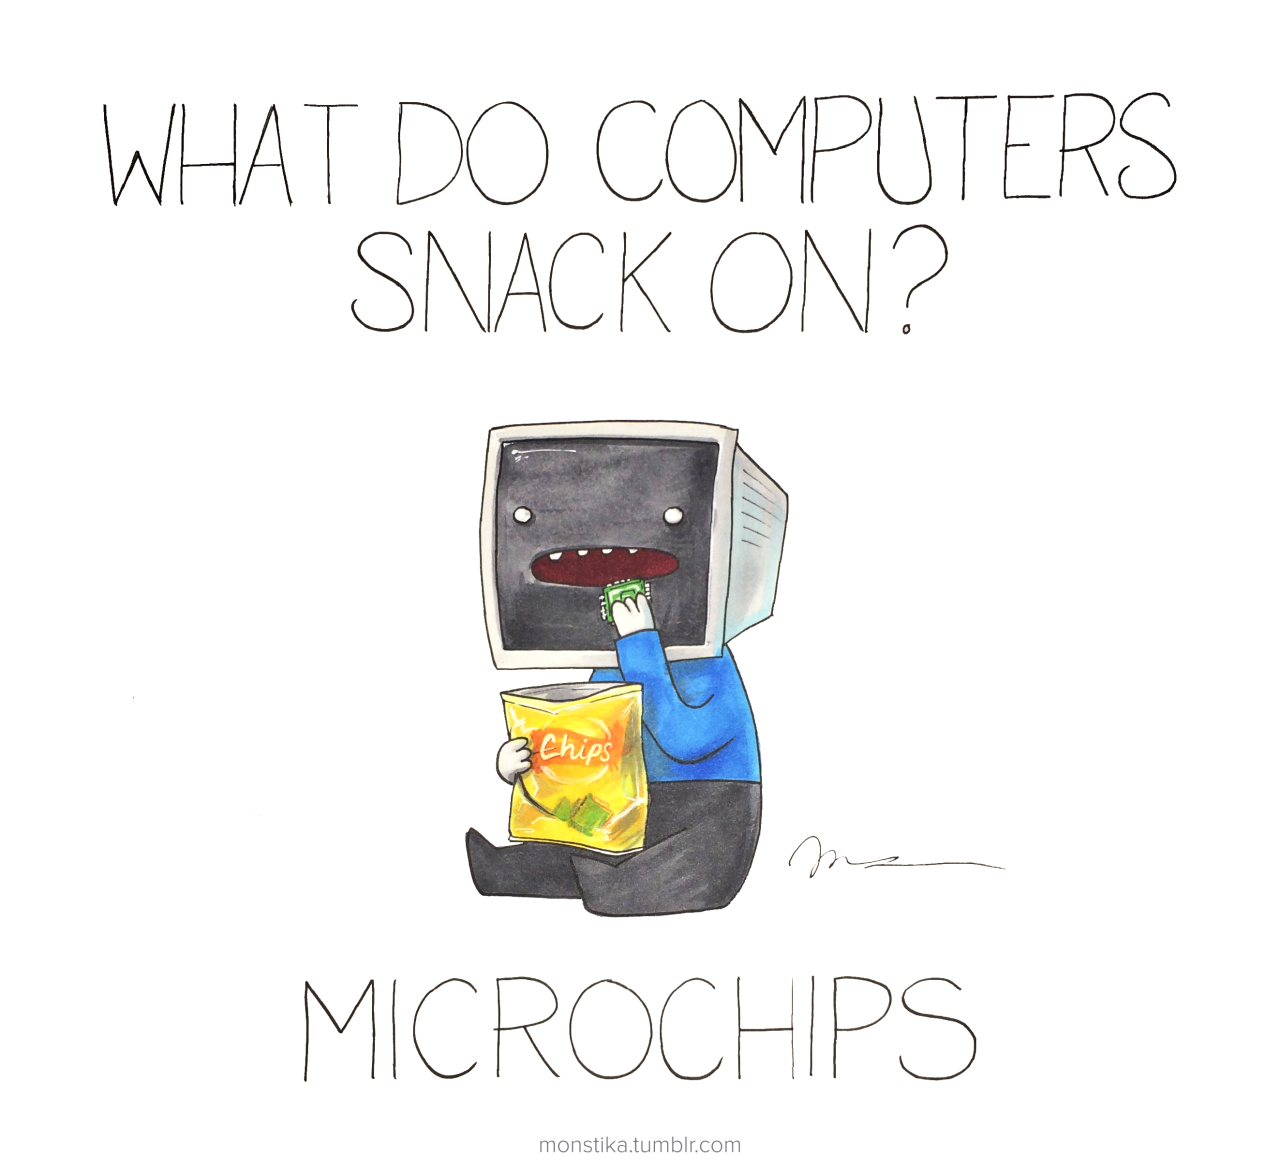 What computers snack on?